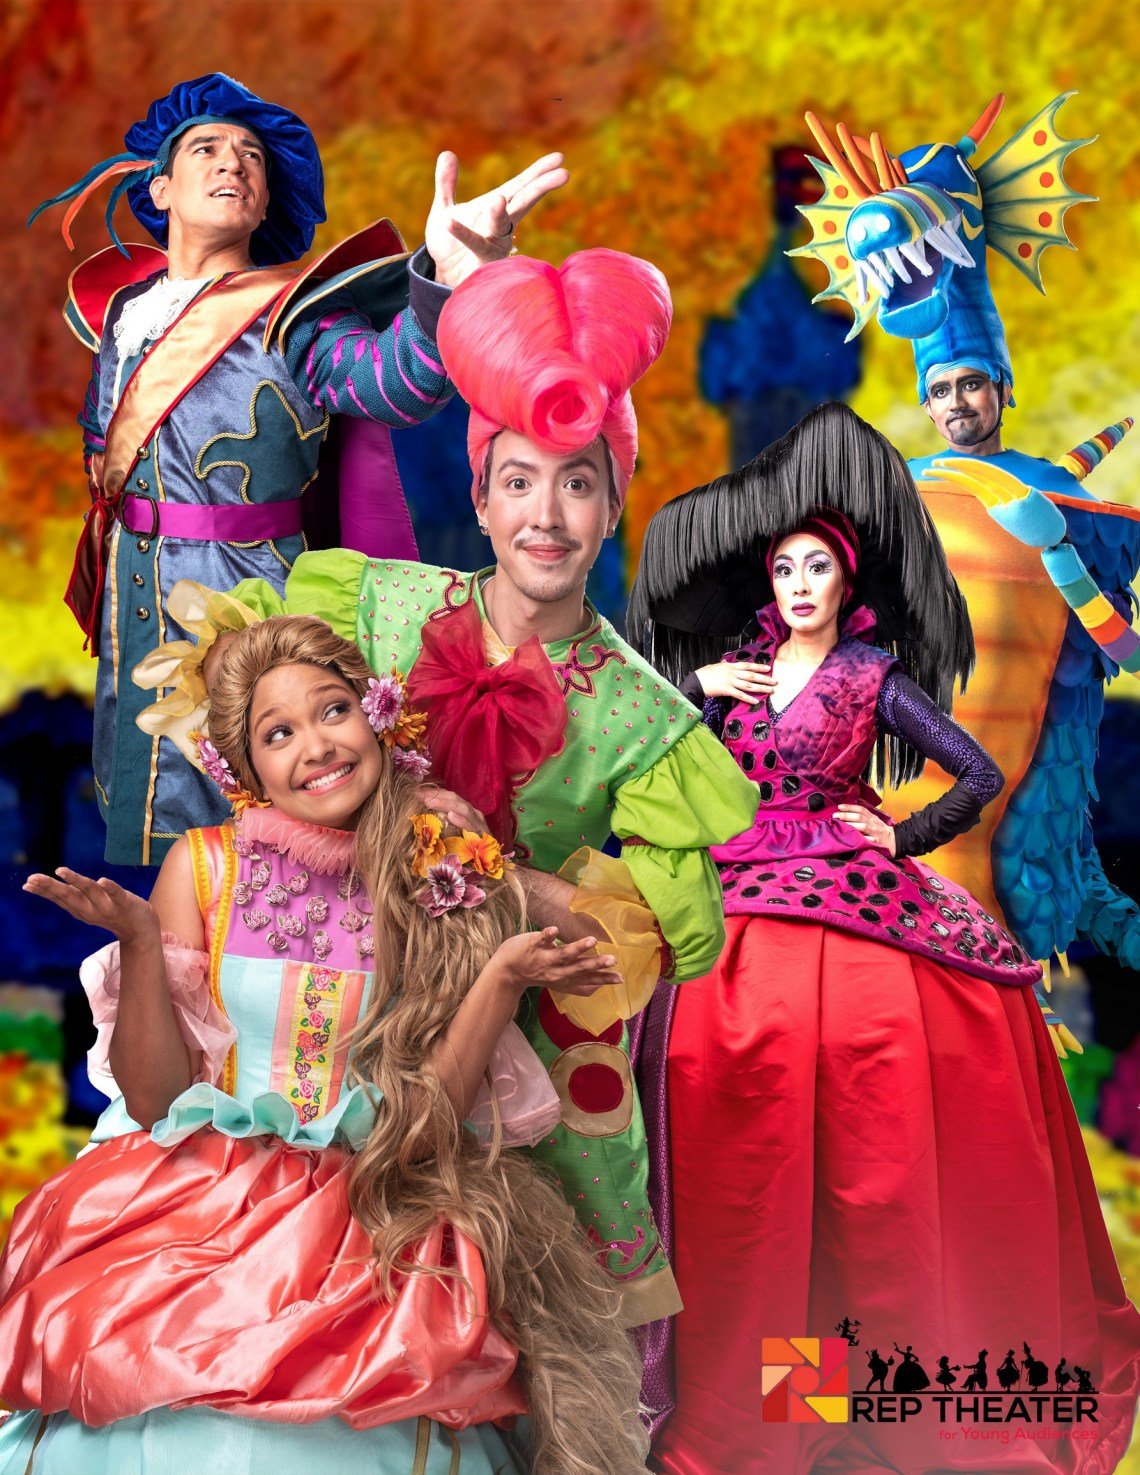 dyosathemomma: Rep's Rapunzel! Rapunzel! A Very Hairy Fairy Tale at the OnStage Theater, Greenbelt 1, Makati City